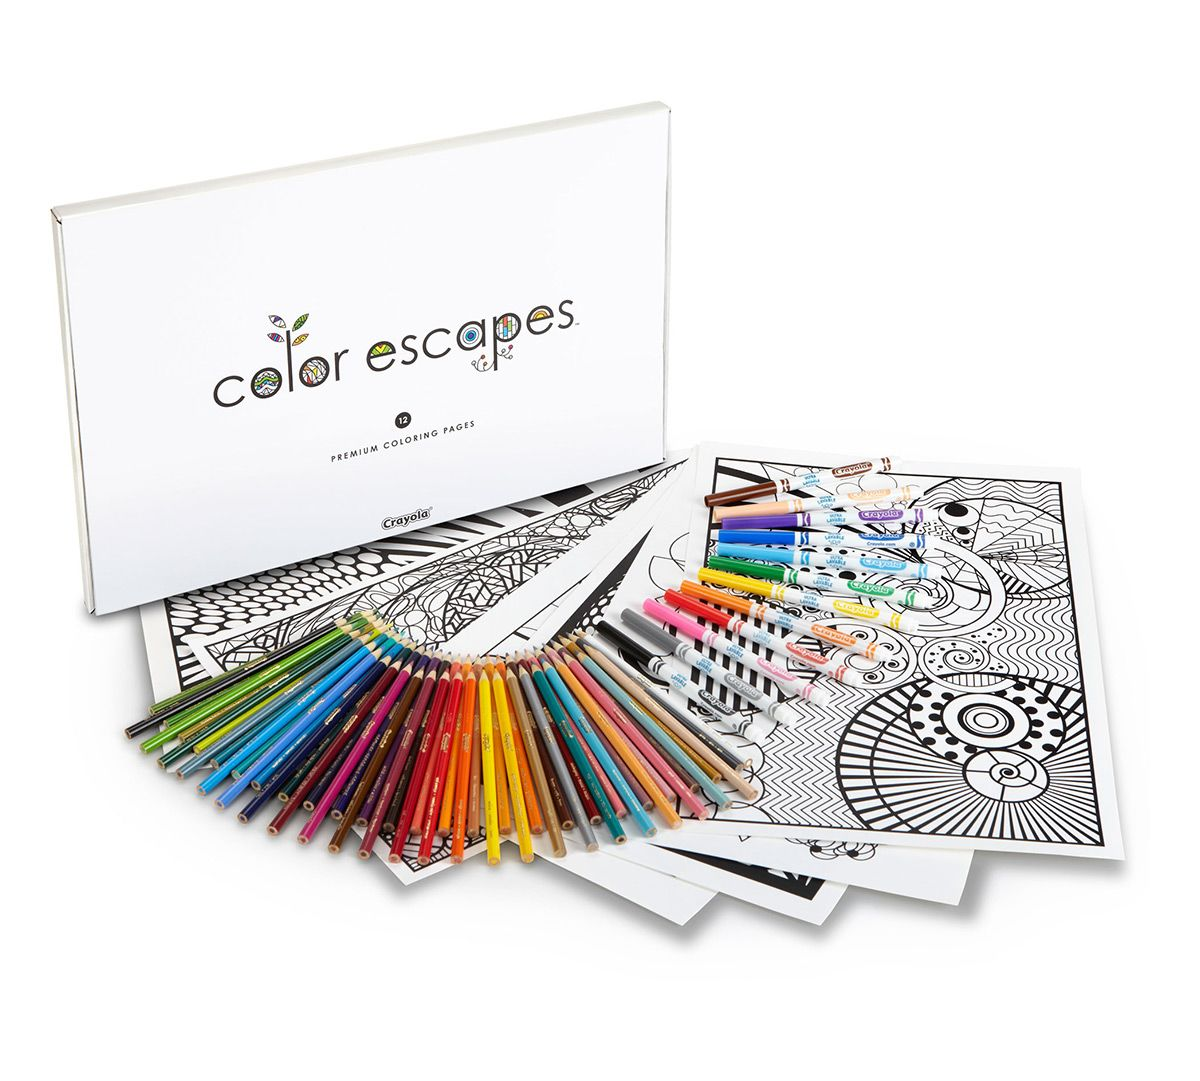 1200x1081 Wonderful Crayola Coloring Kit 17 Small Jpg Sw 1200 Sh 1500 Sm Fit